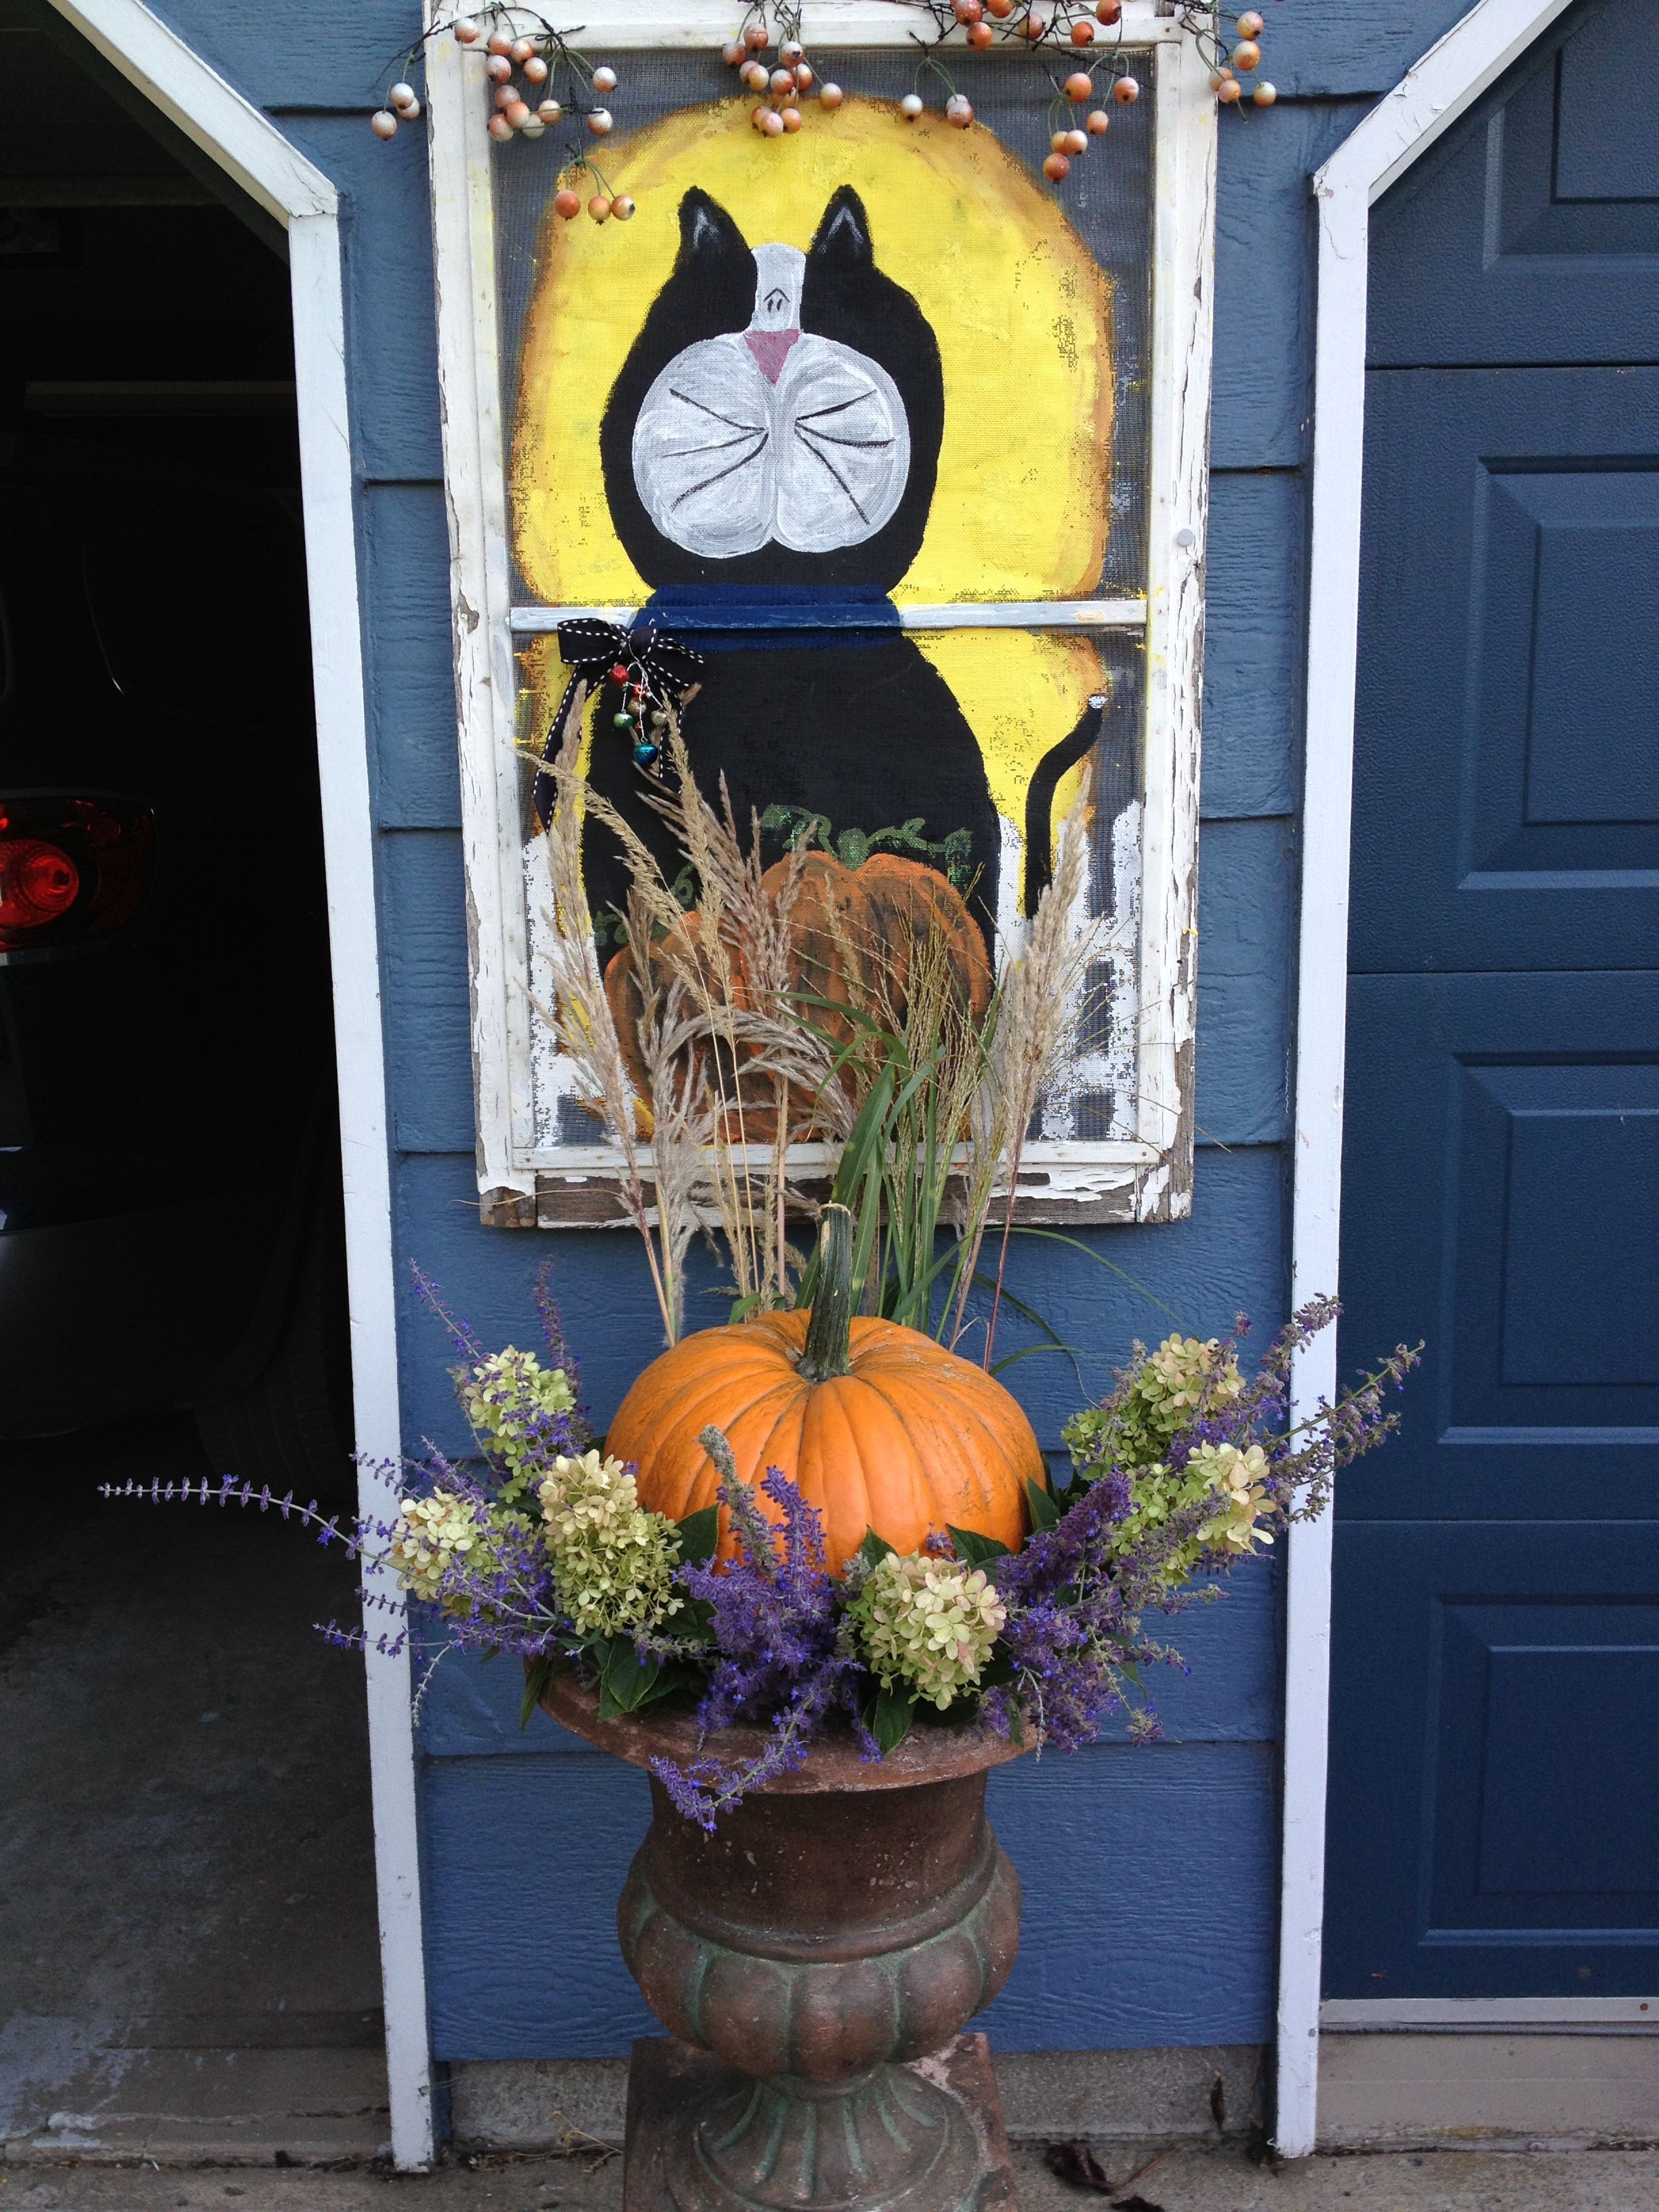 Halloween Decorations DIY! Urns with pumpkins, grasses, Mexican sage - Window Halloween Decorations